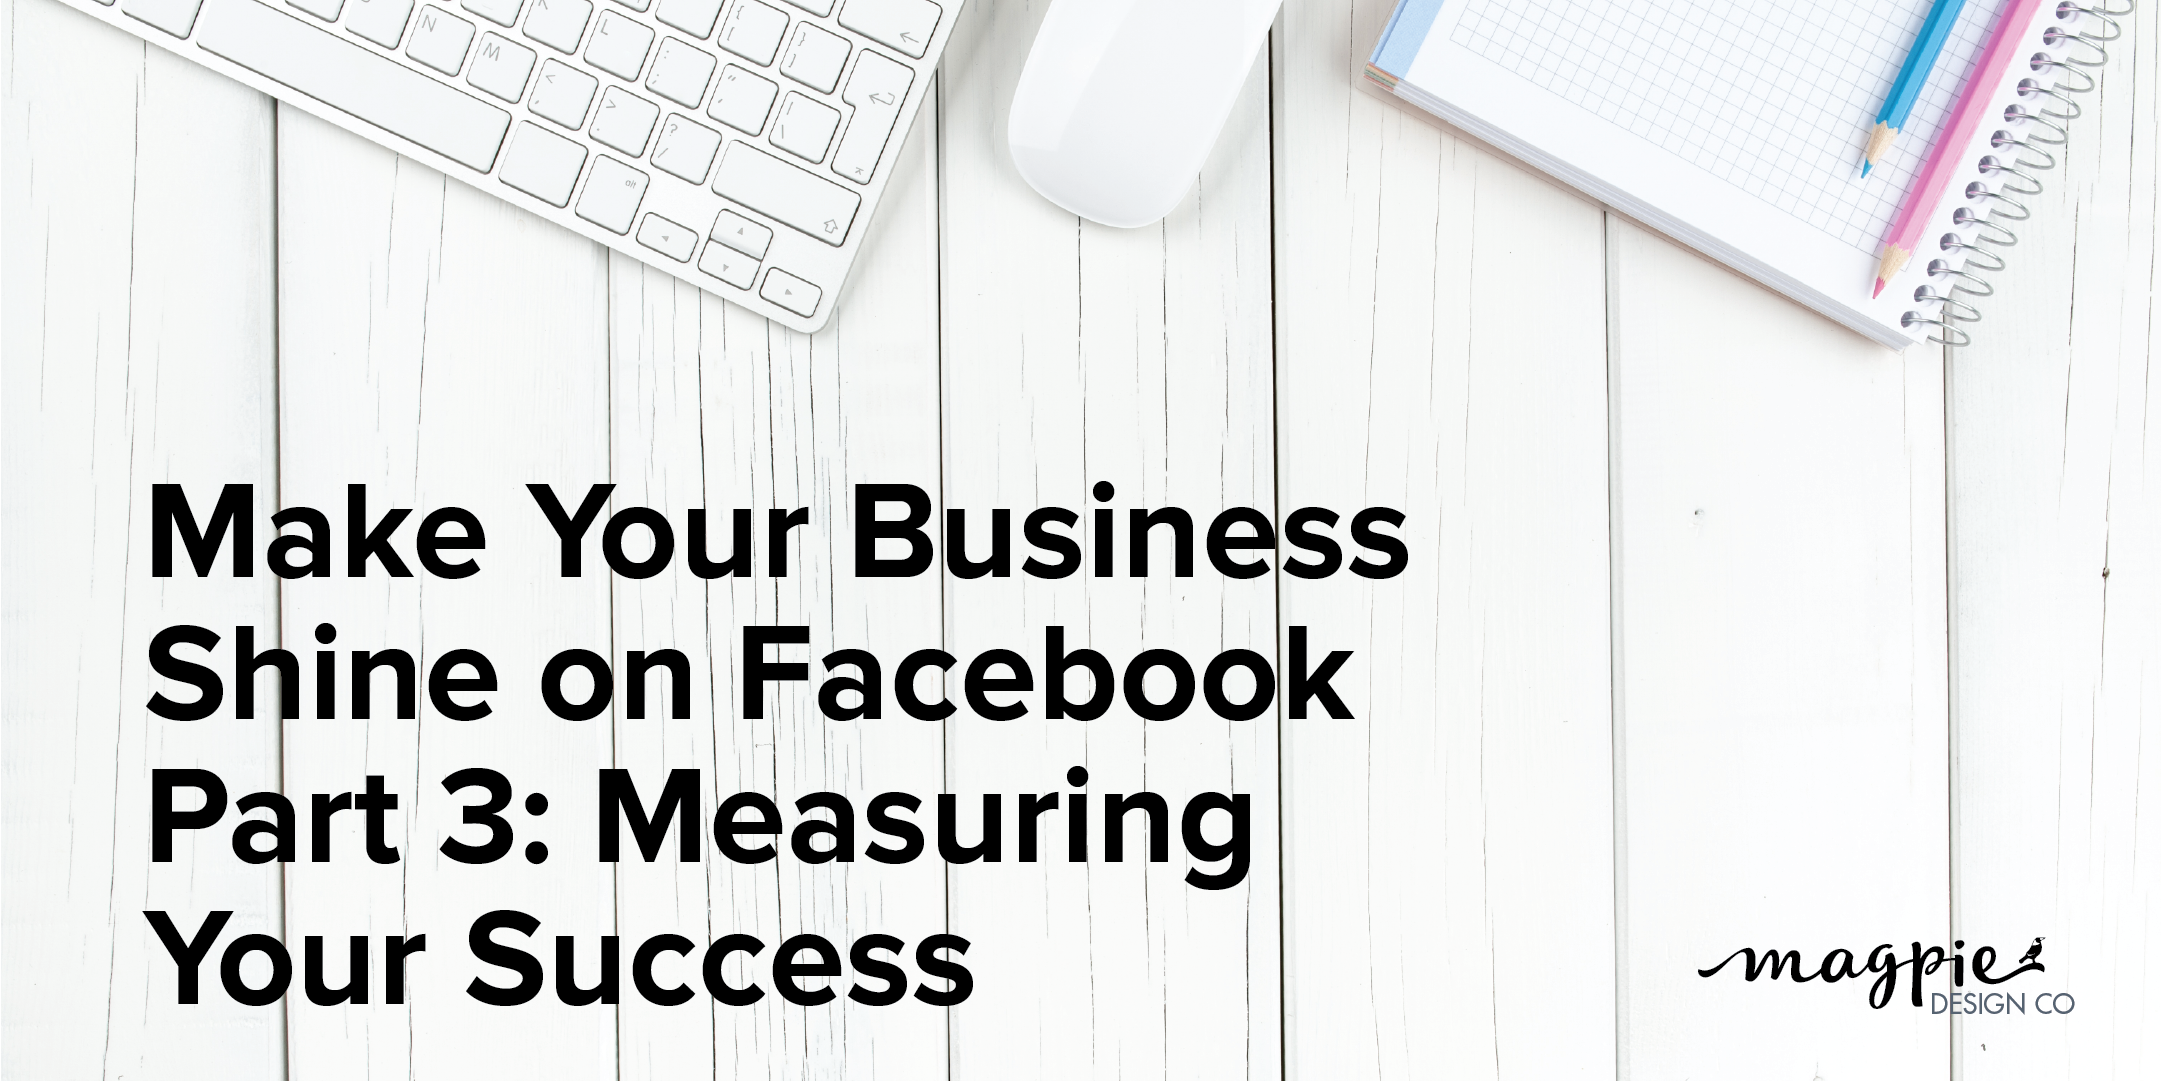 Make Your Business Shine on Facebook - Part 3: Measuring Your Success